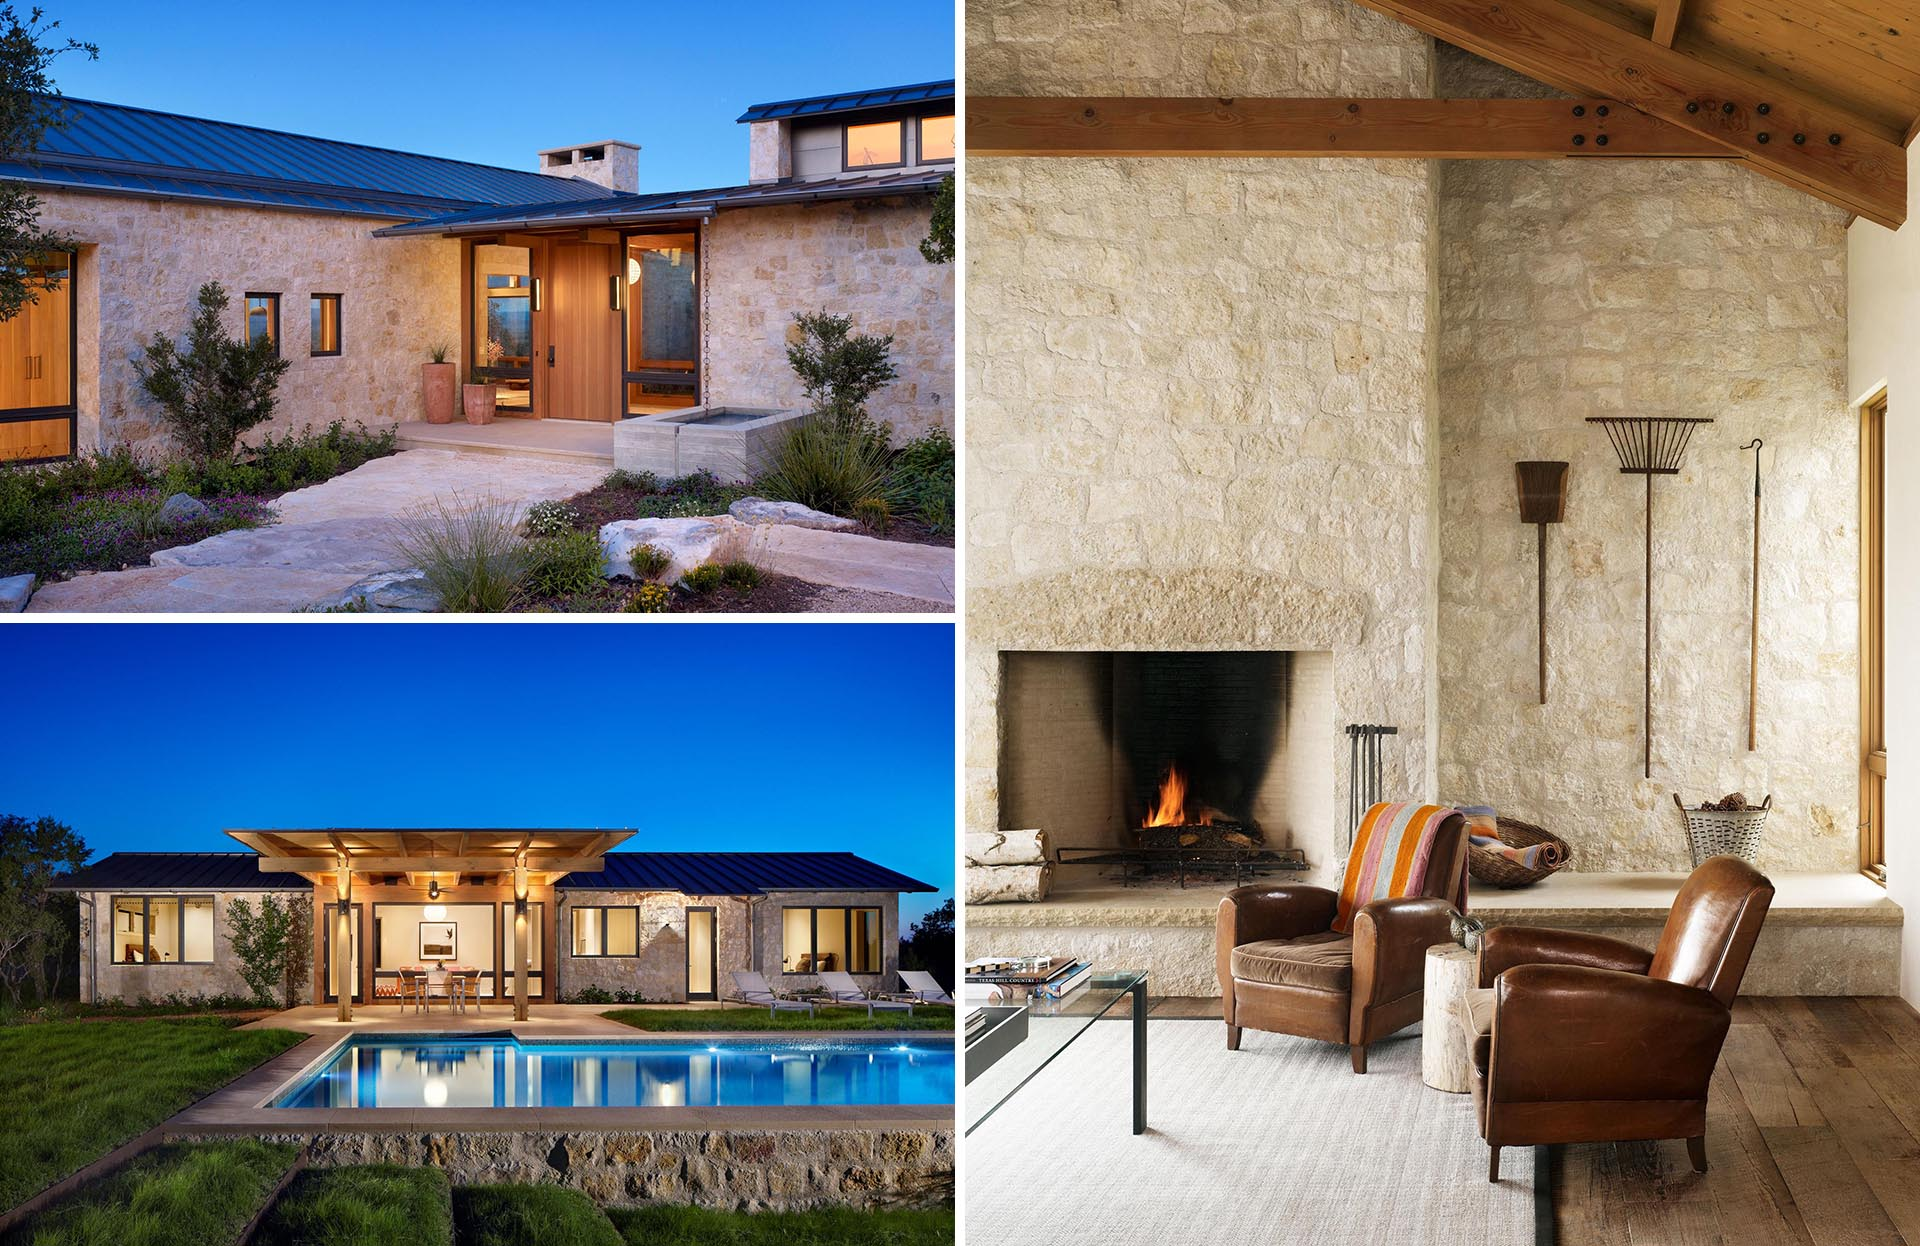 This contemporary home includes limestone walls, a metal roof, and black window frames.